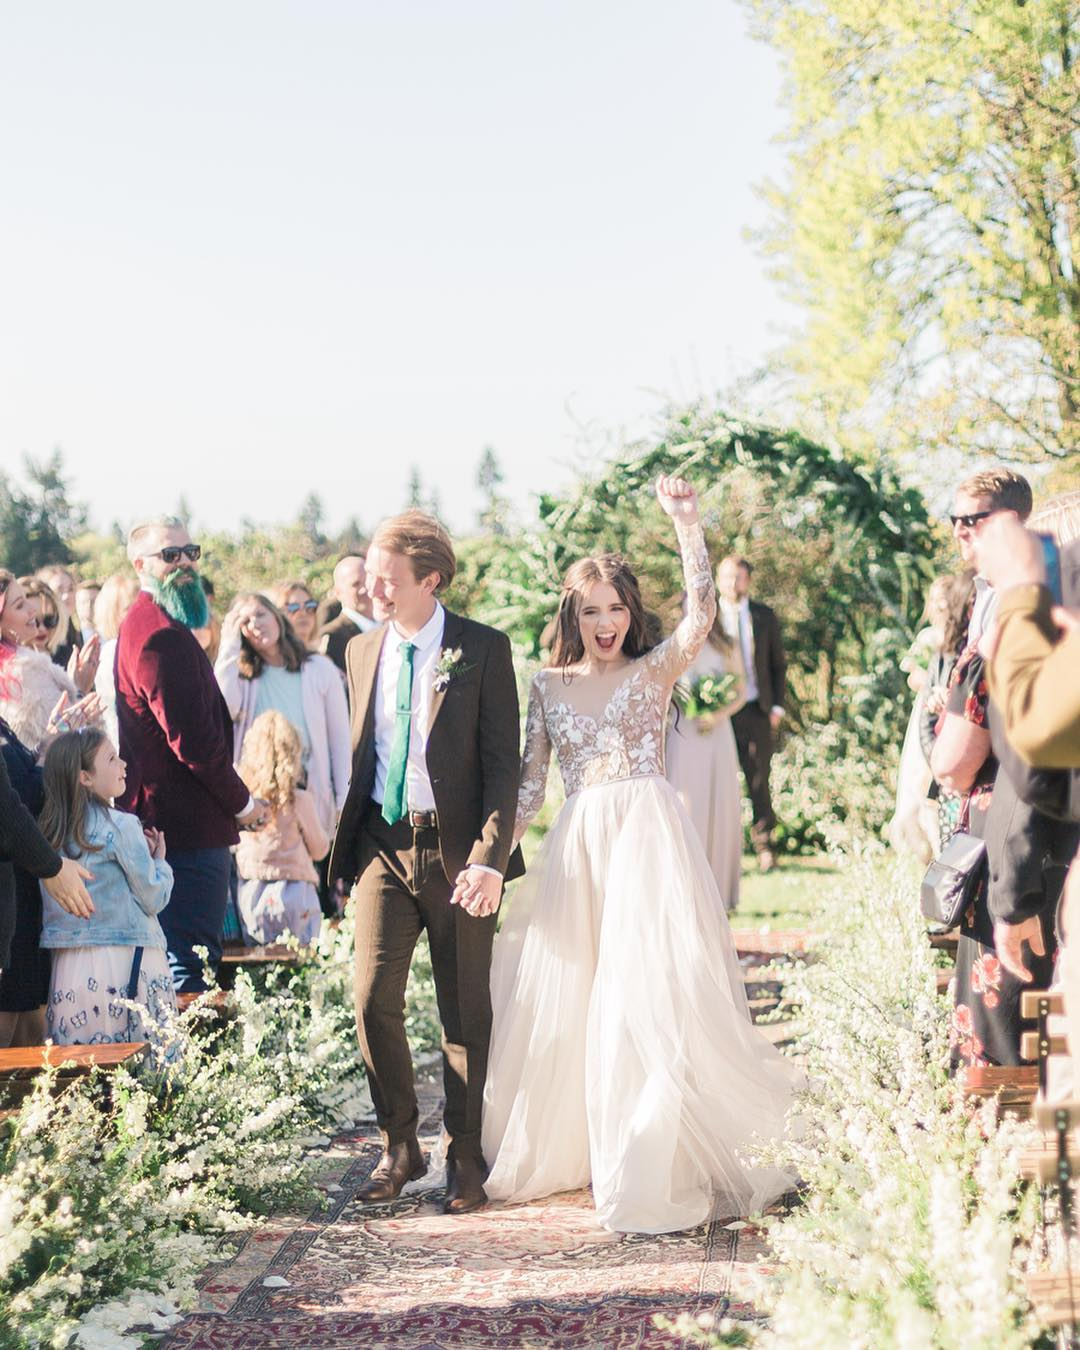 Acacia Brinley and her husband, Jairus Kersey walking down the aisle